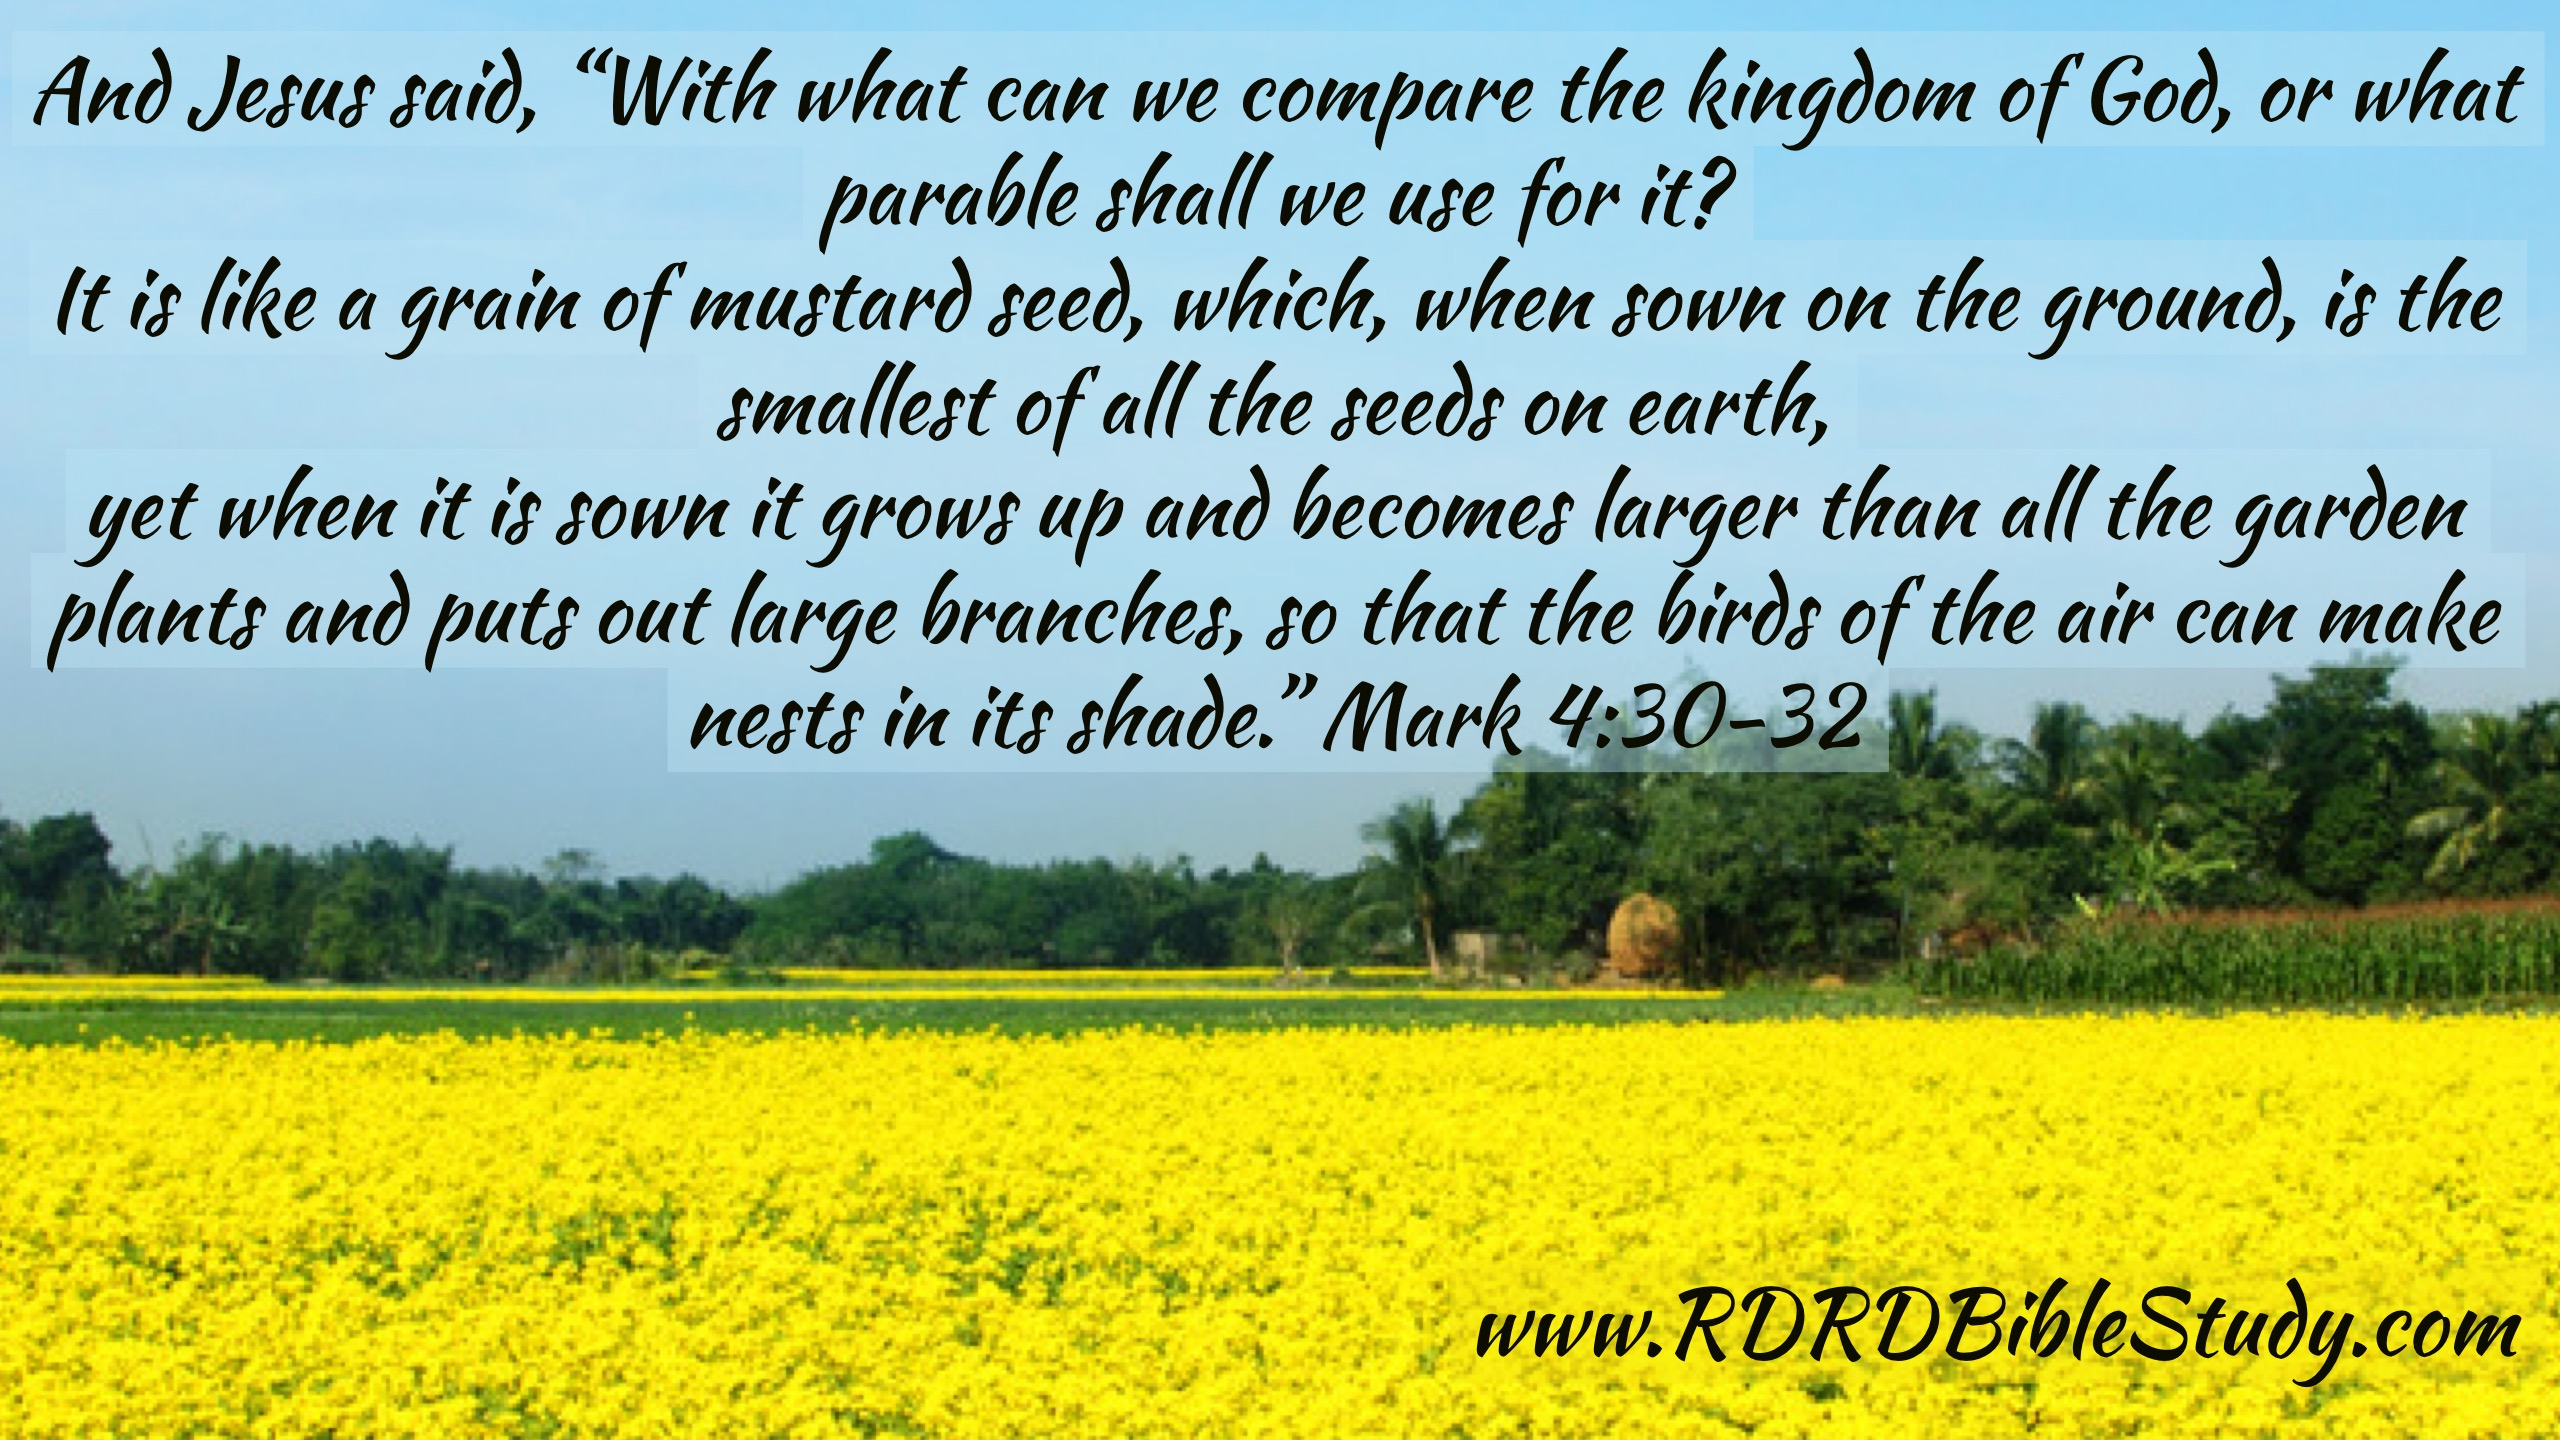 RDRD Bible Study Mark 4:30-32; Transformed Thinking By Grace: Thank God he's an atheist.